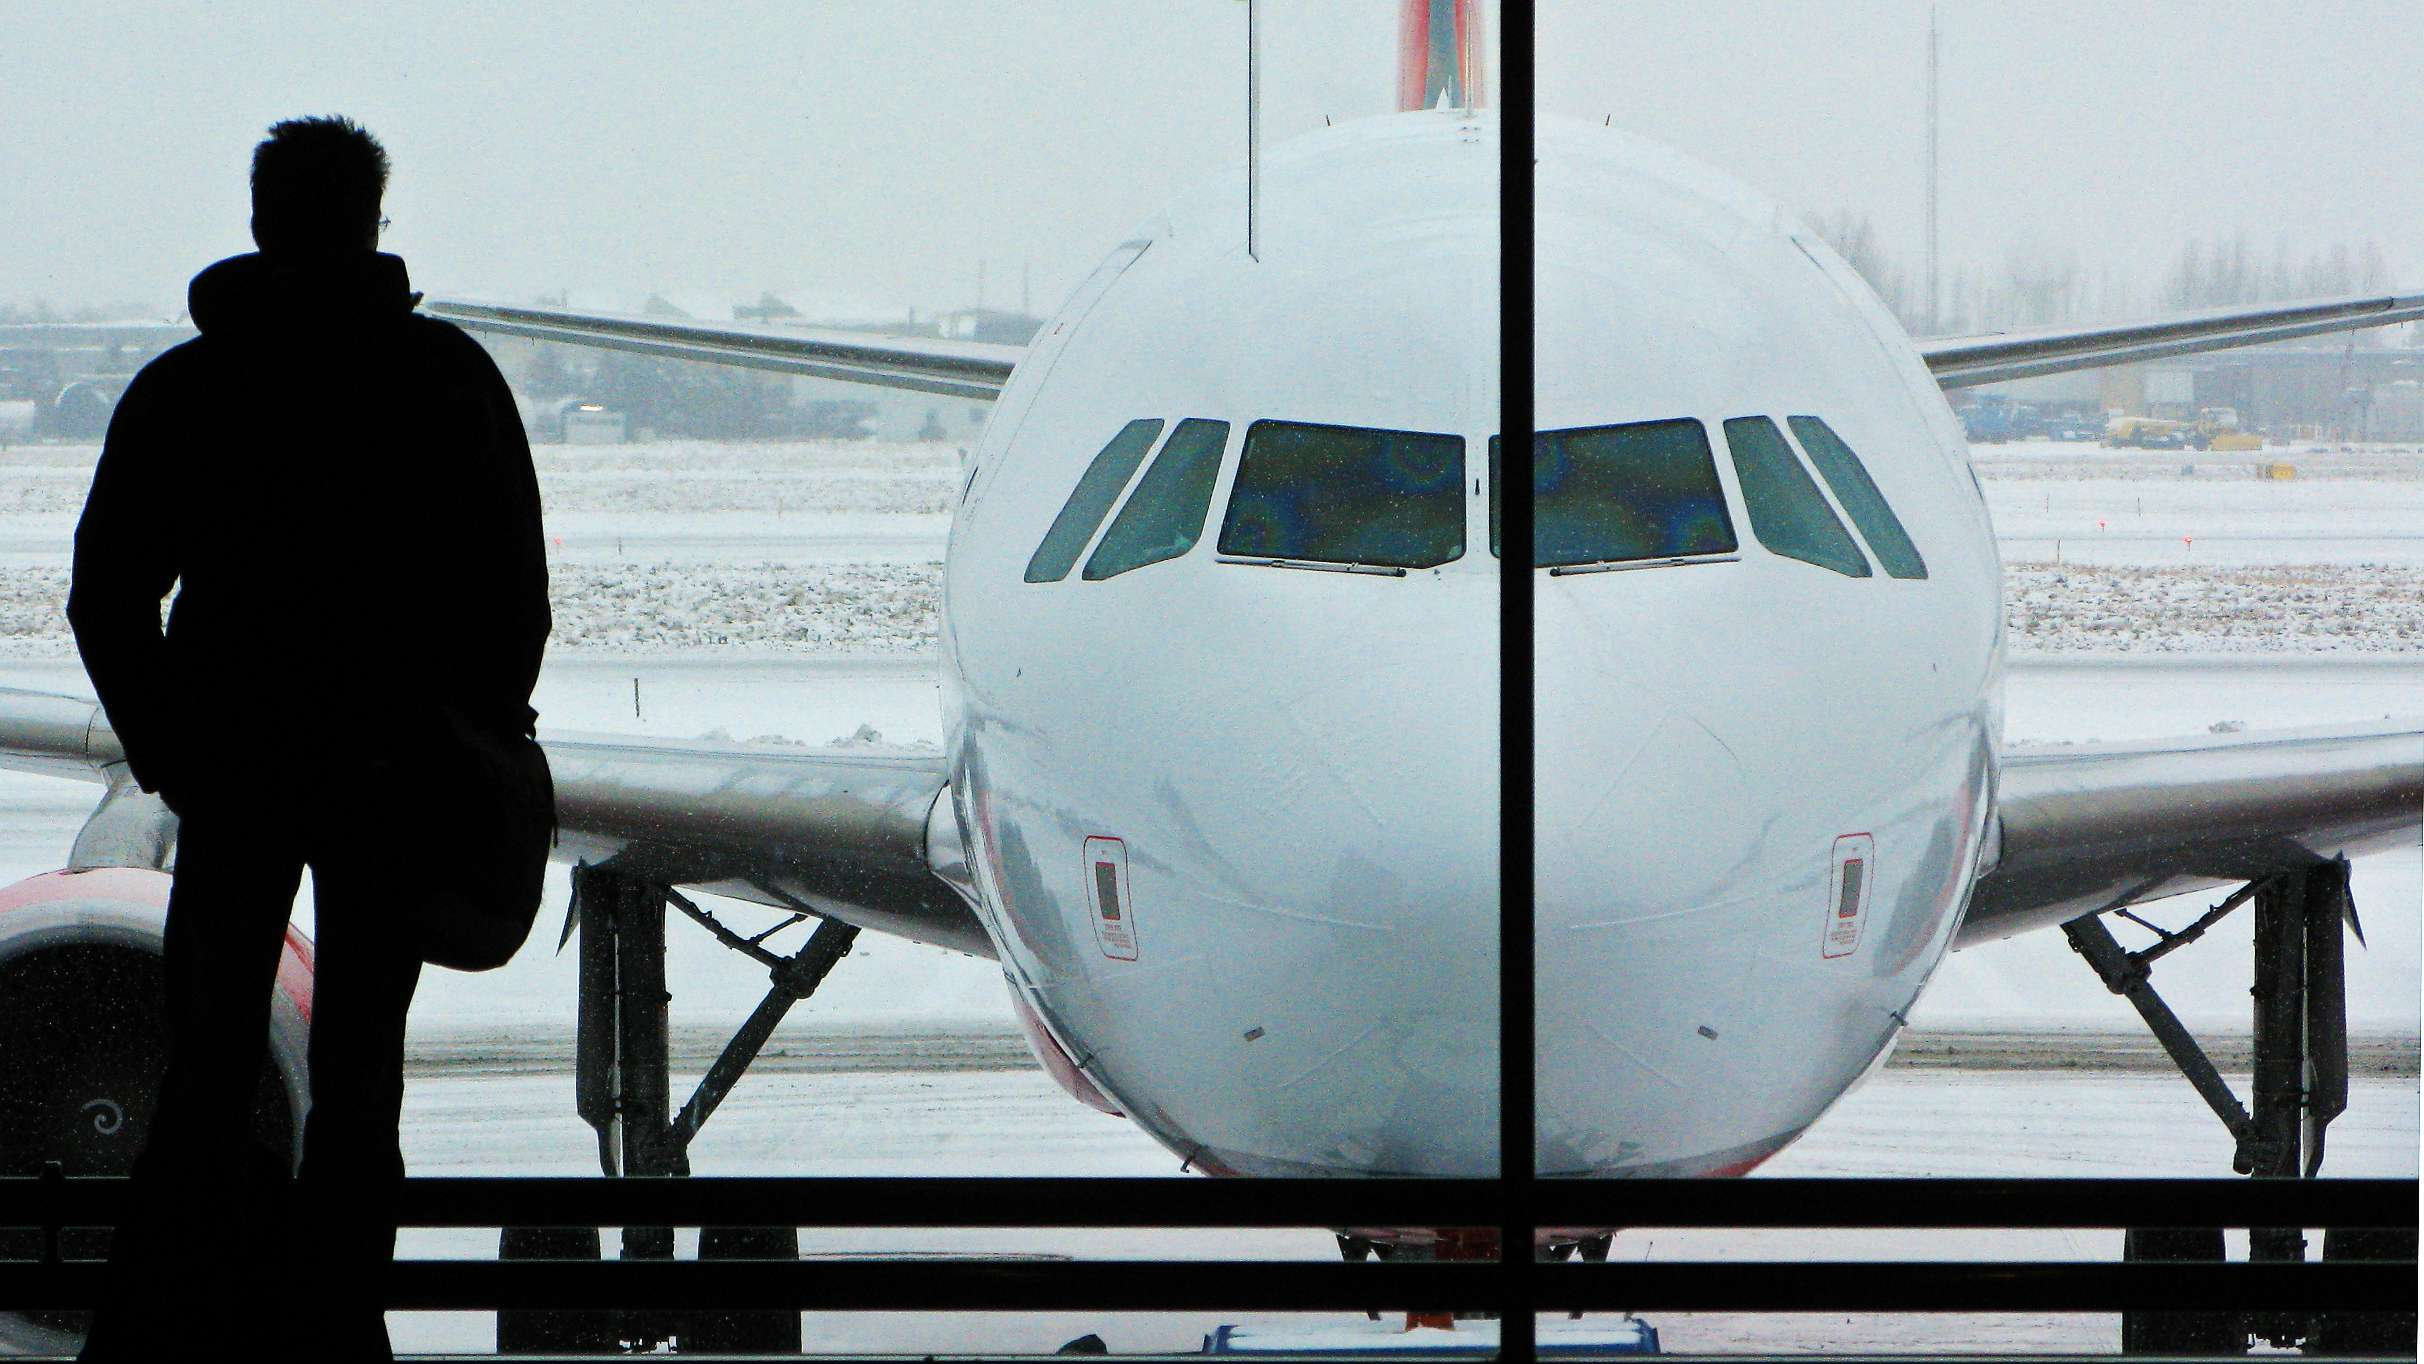 Europe's transport sector: Aviation and shipping face big